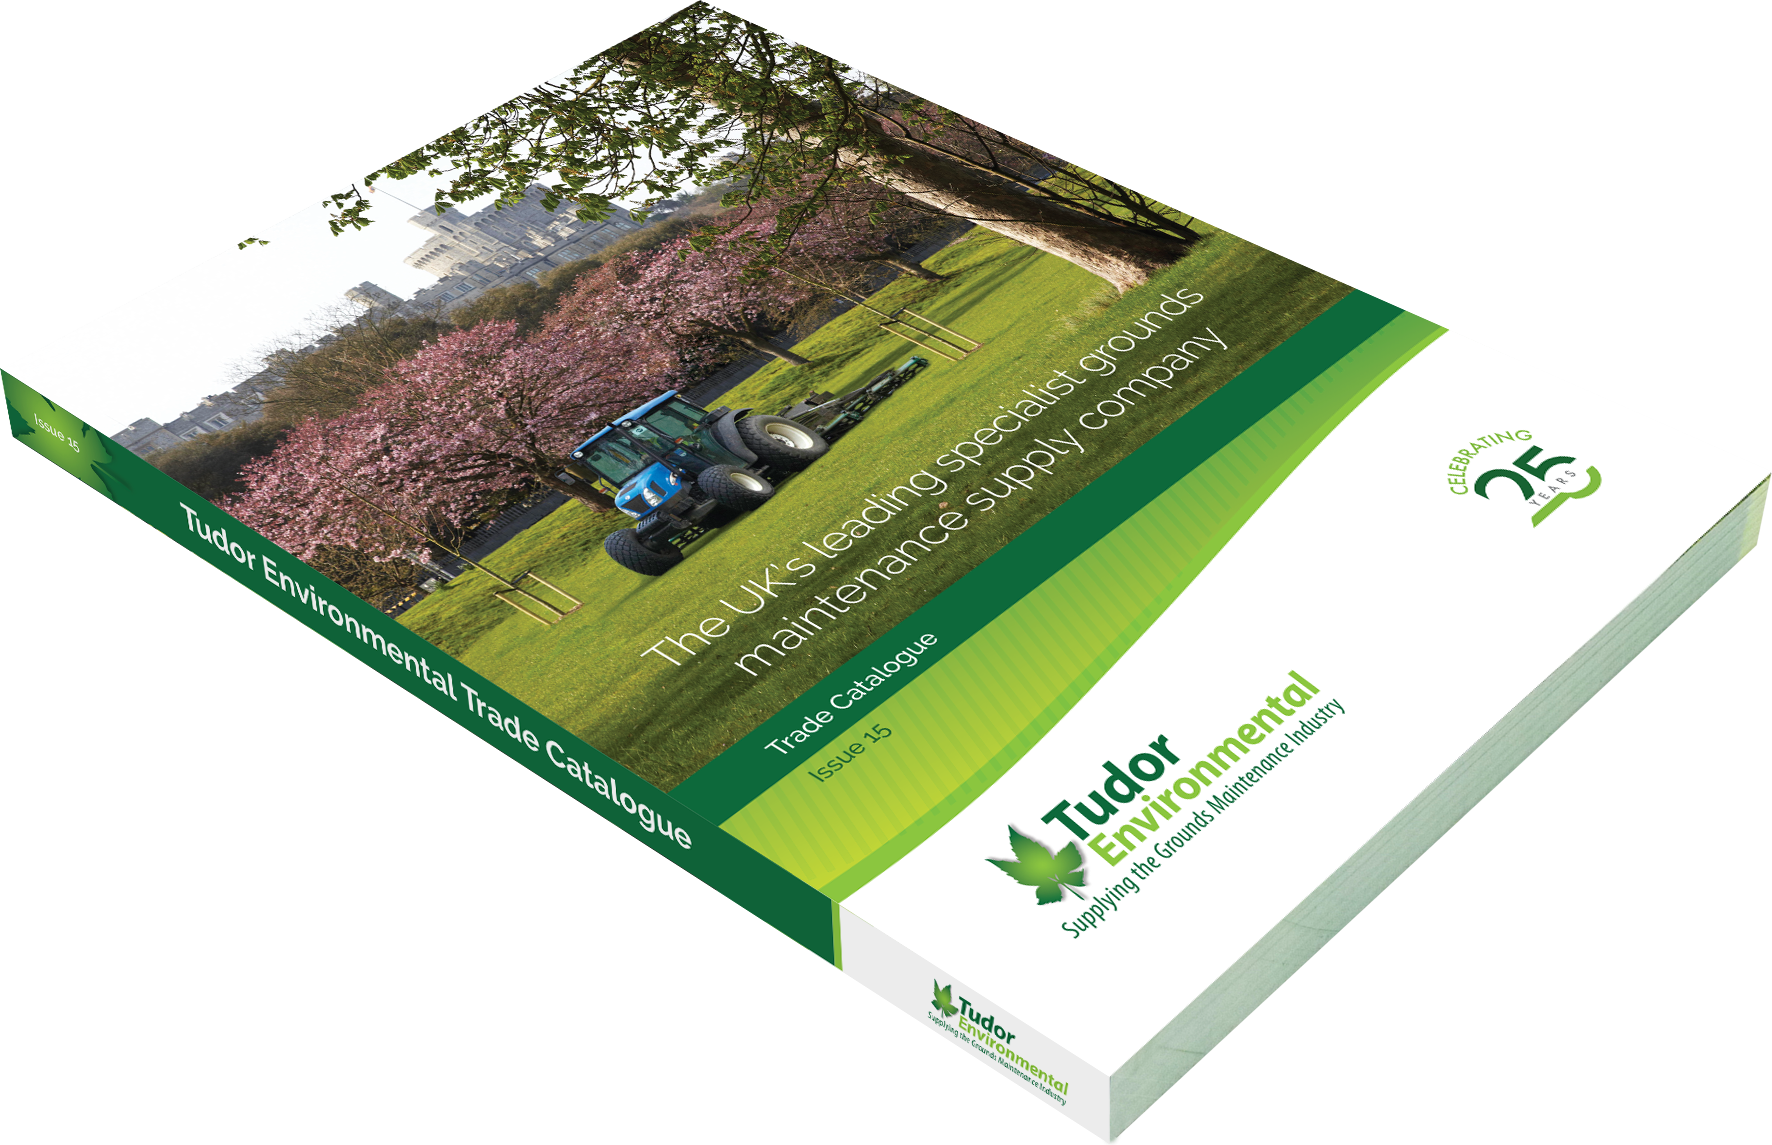 Tudor Environmental | Tools and equipment to the Grounds Maintenance